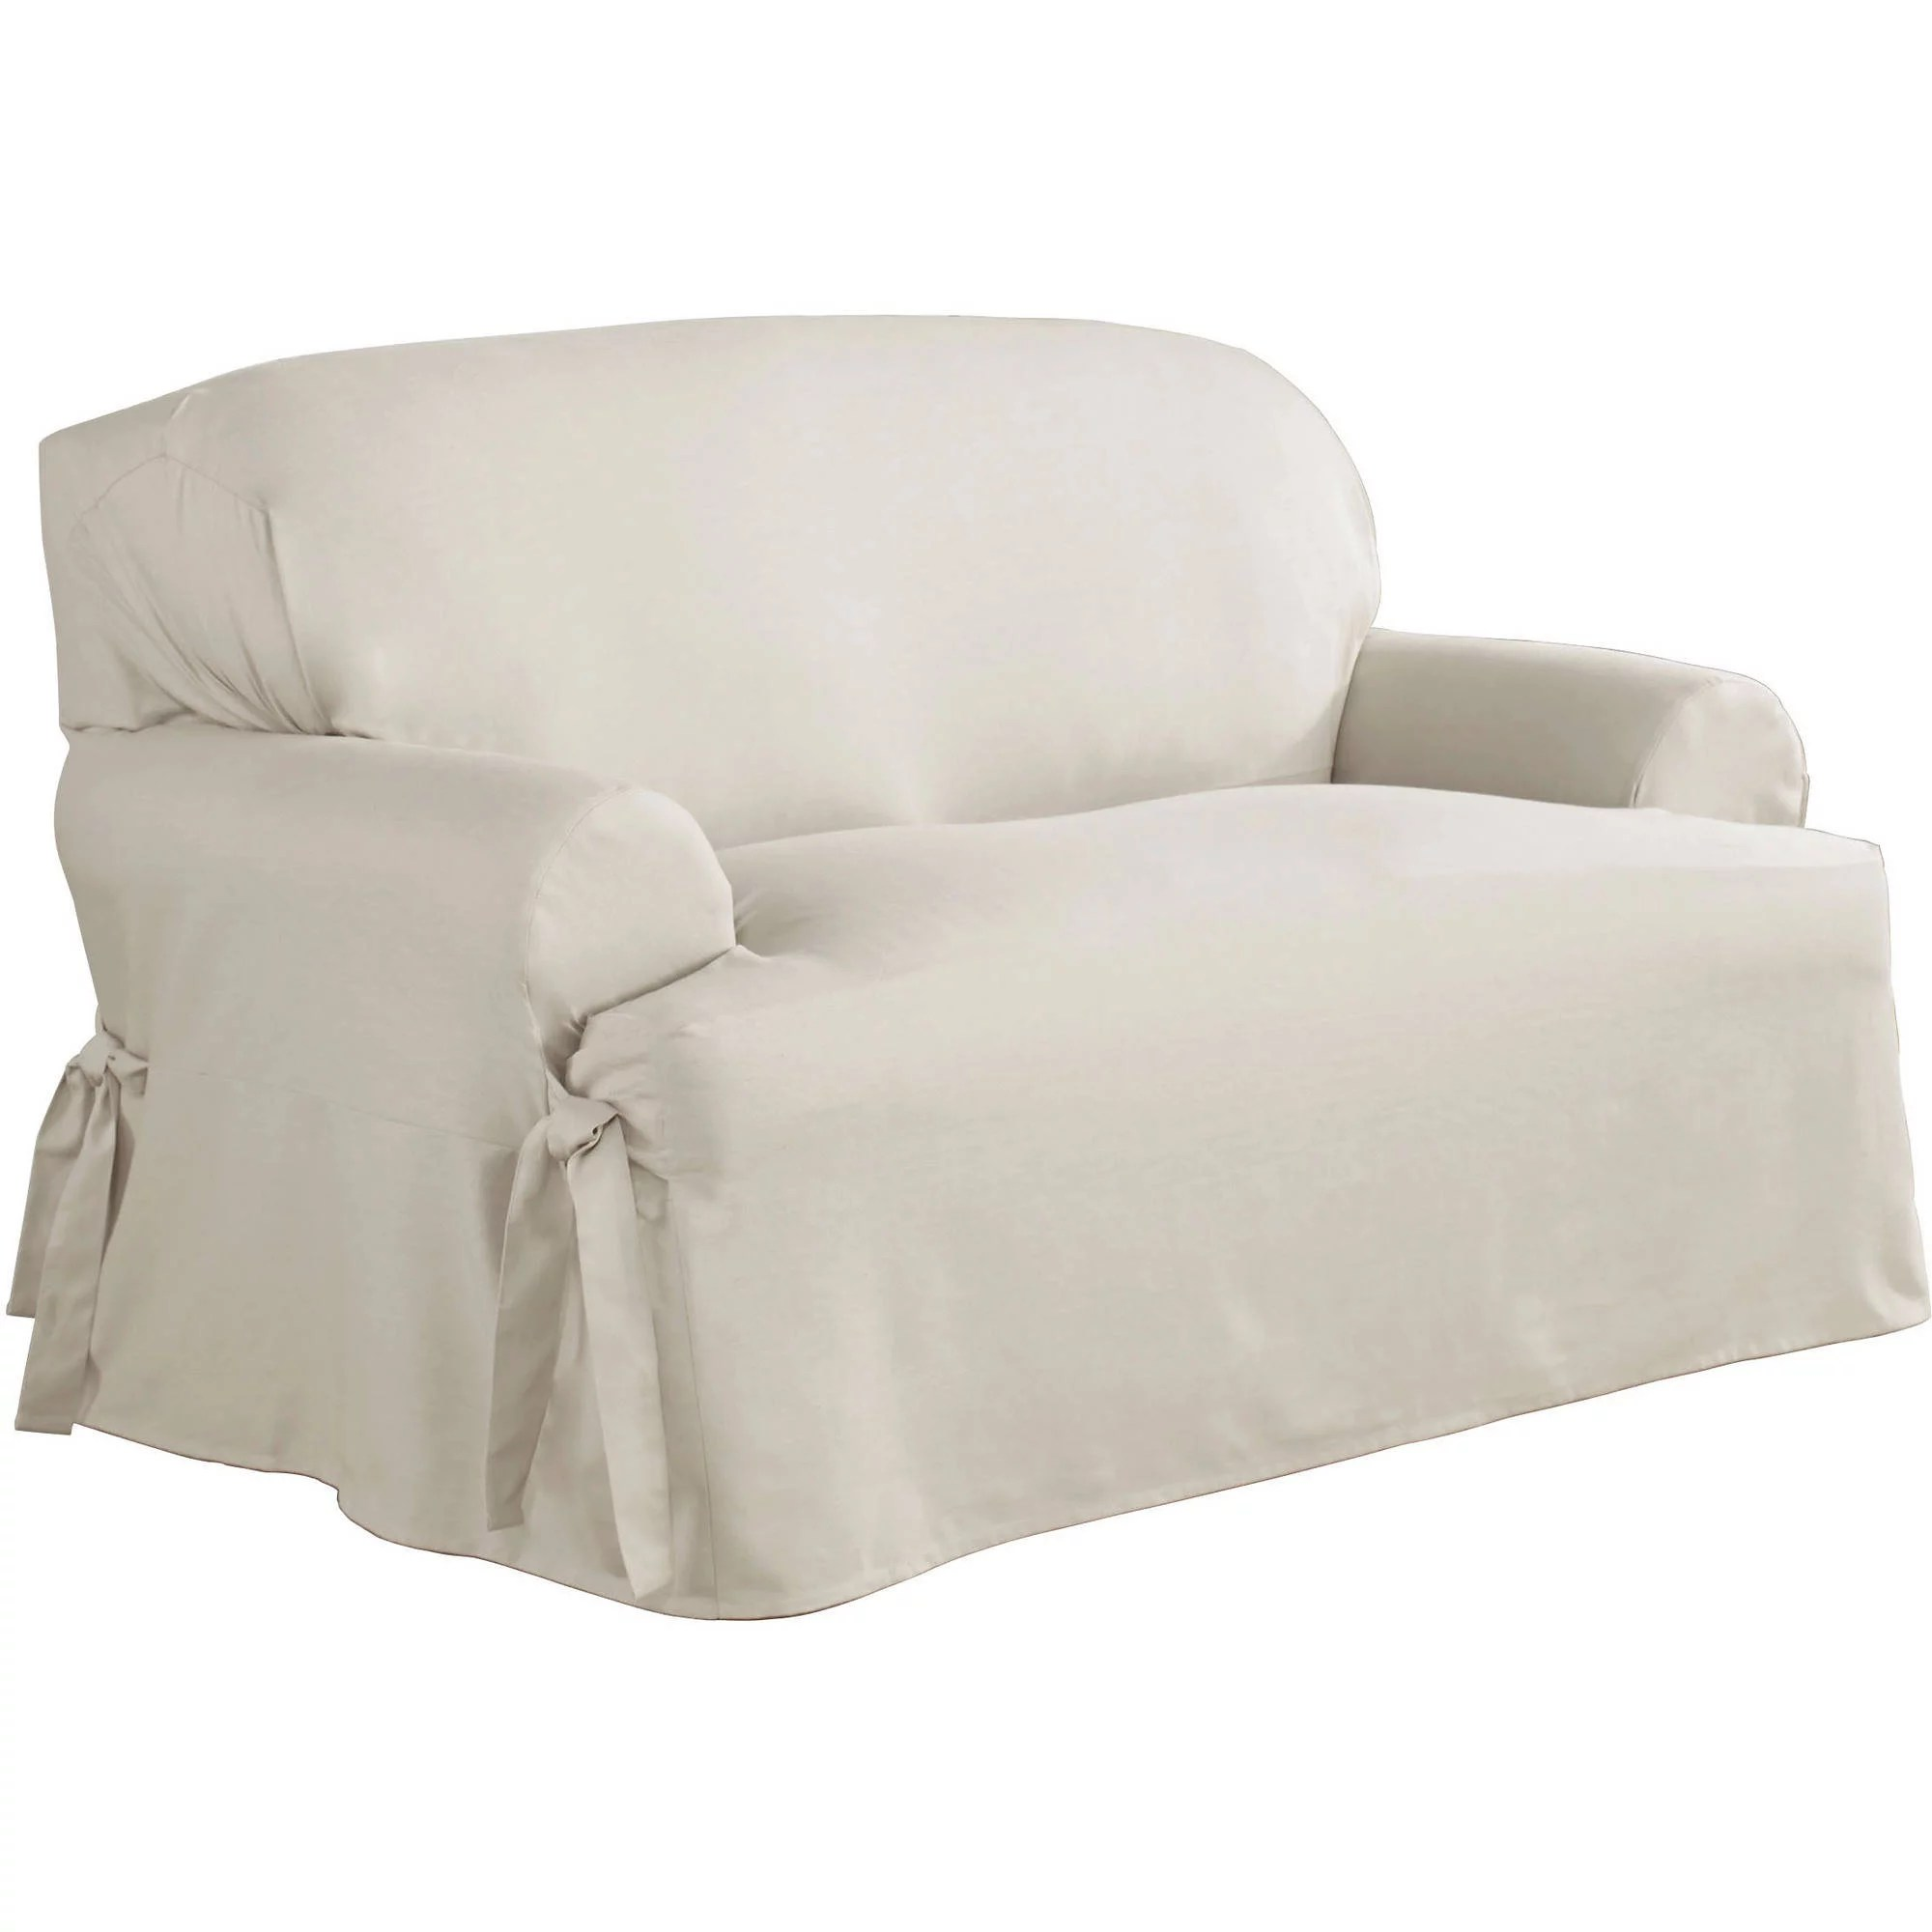 Slip Cover For Chair Serta Relaxed Fit Duck Furniture Slipcover Loveseat 1 Piece T Cushion